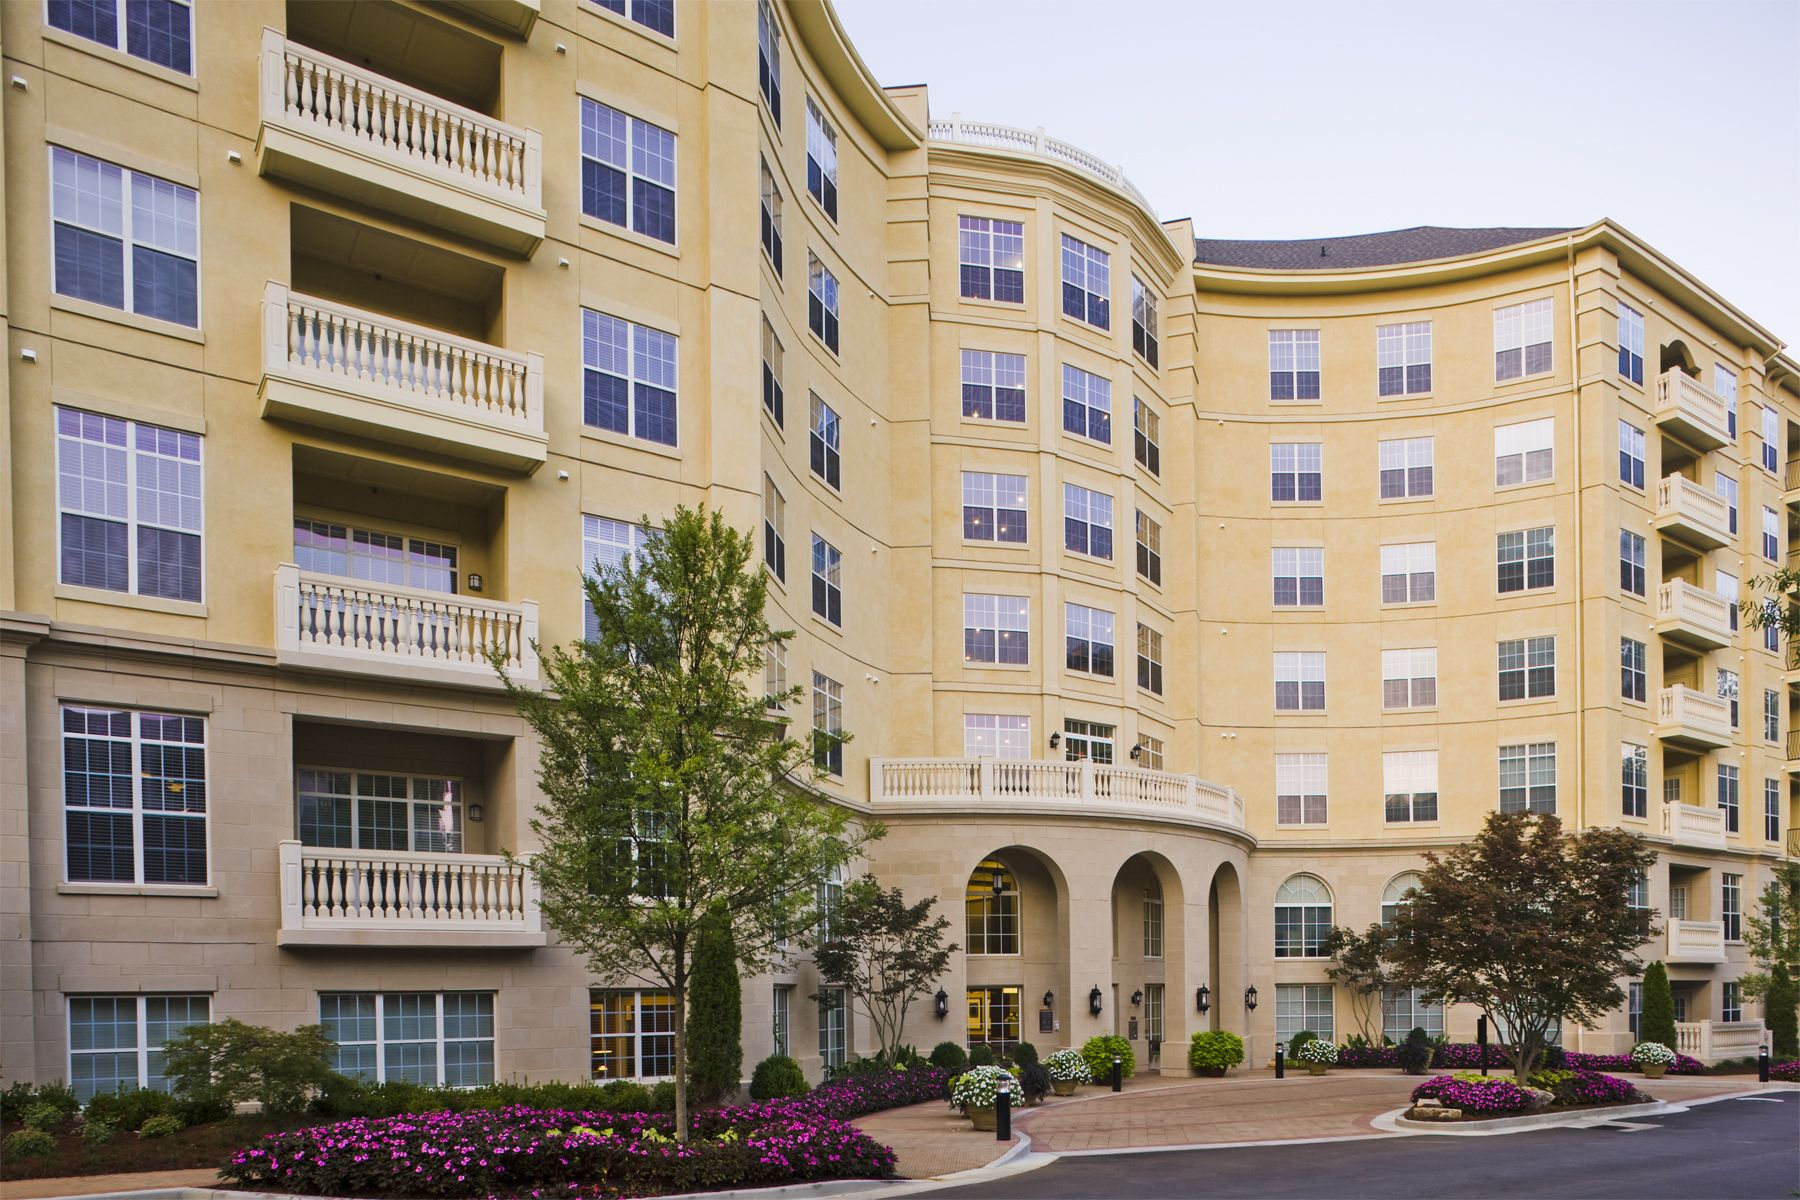 Post Alexander Is Located In The Heart Of Buckhead With Easy